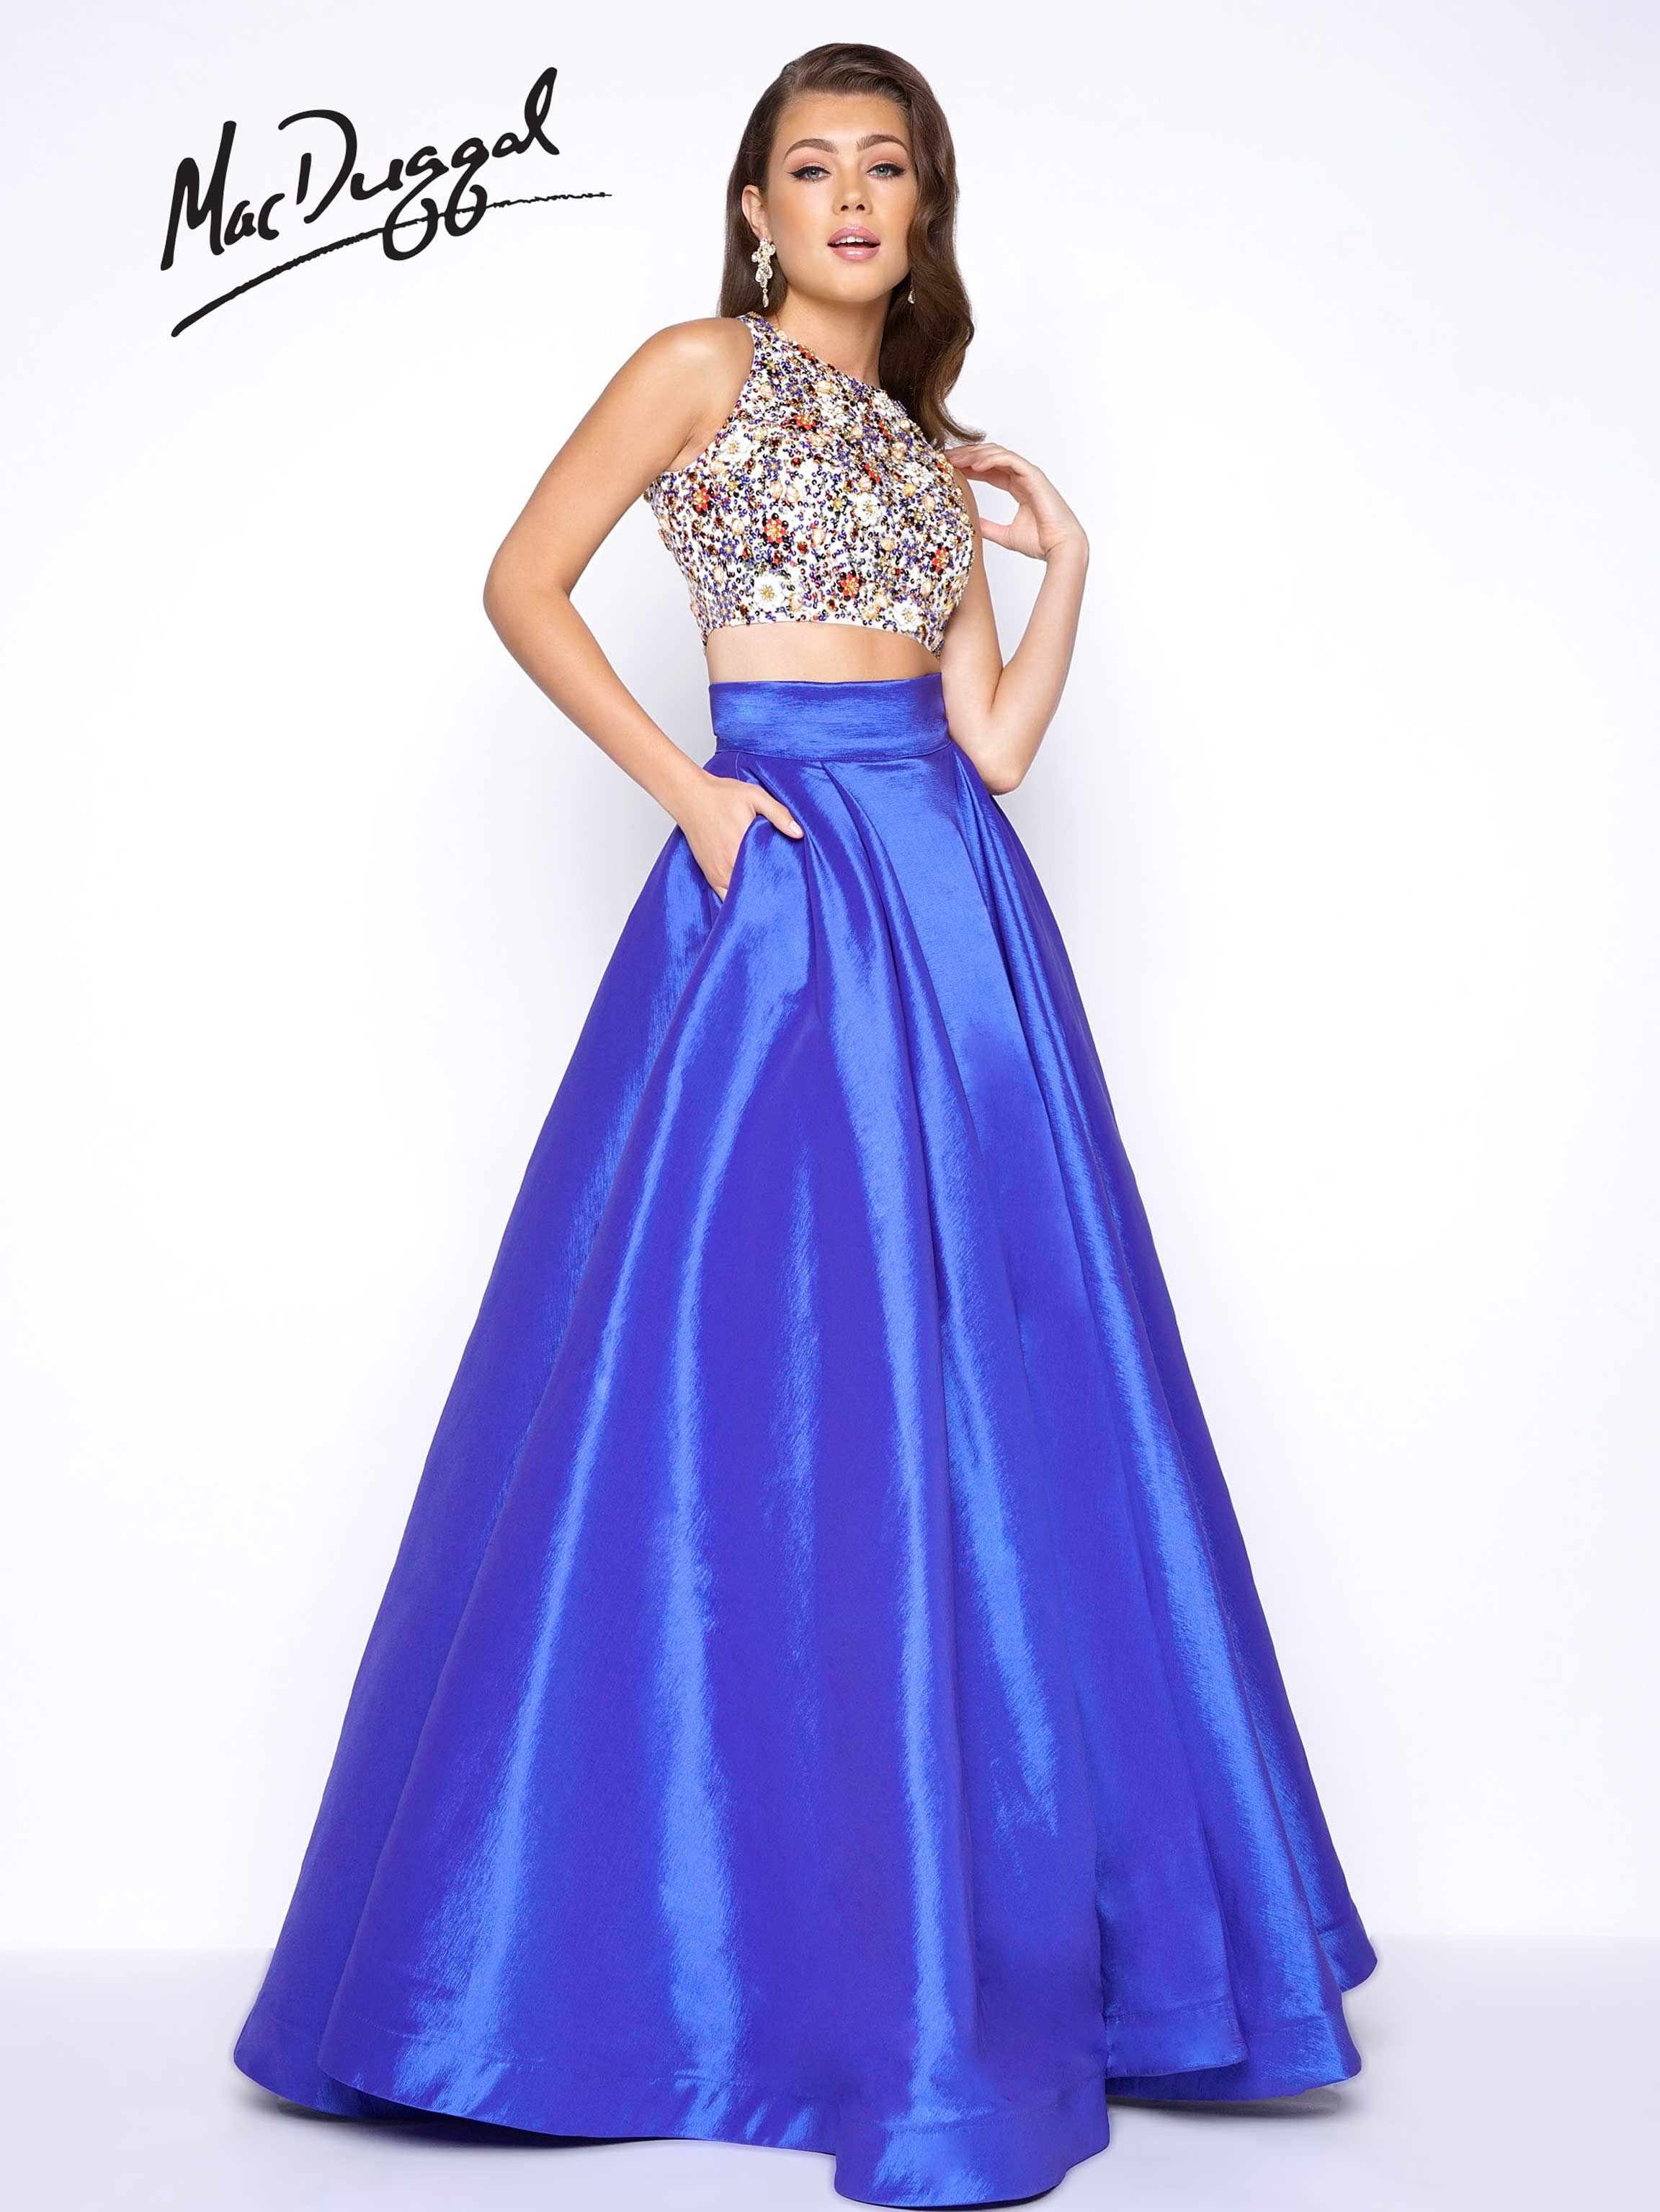 High Neck Two Piece Prom Dress With Fully Beaded Top And Satin